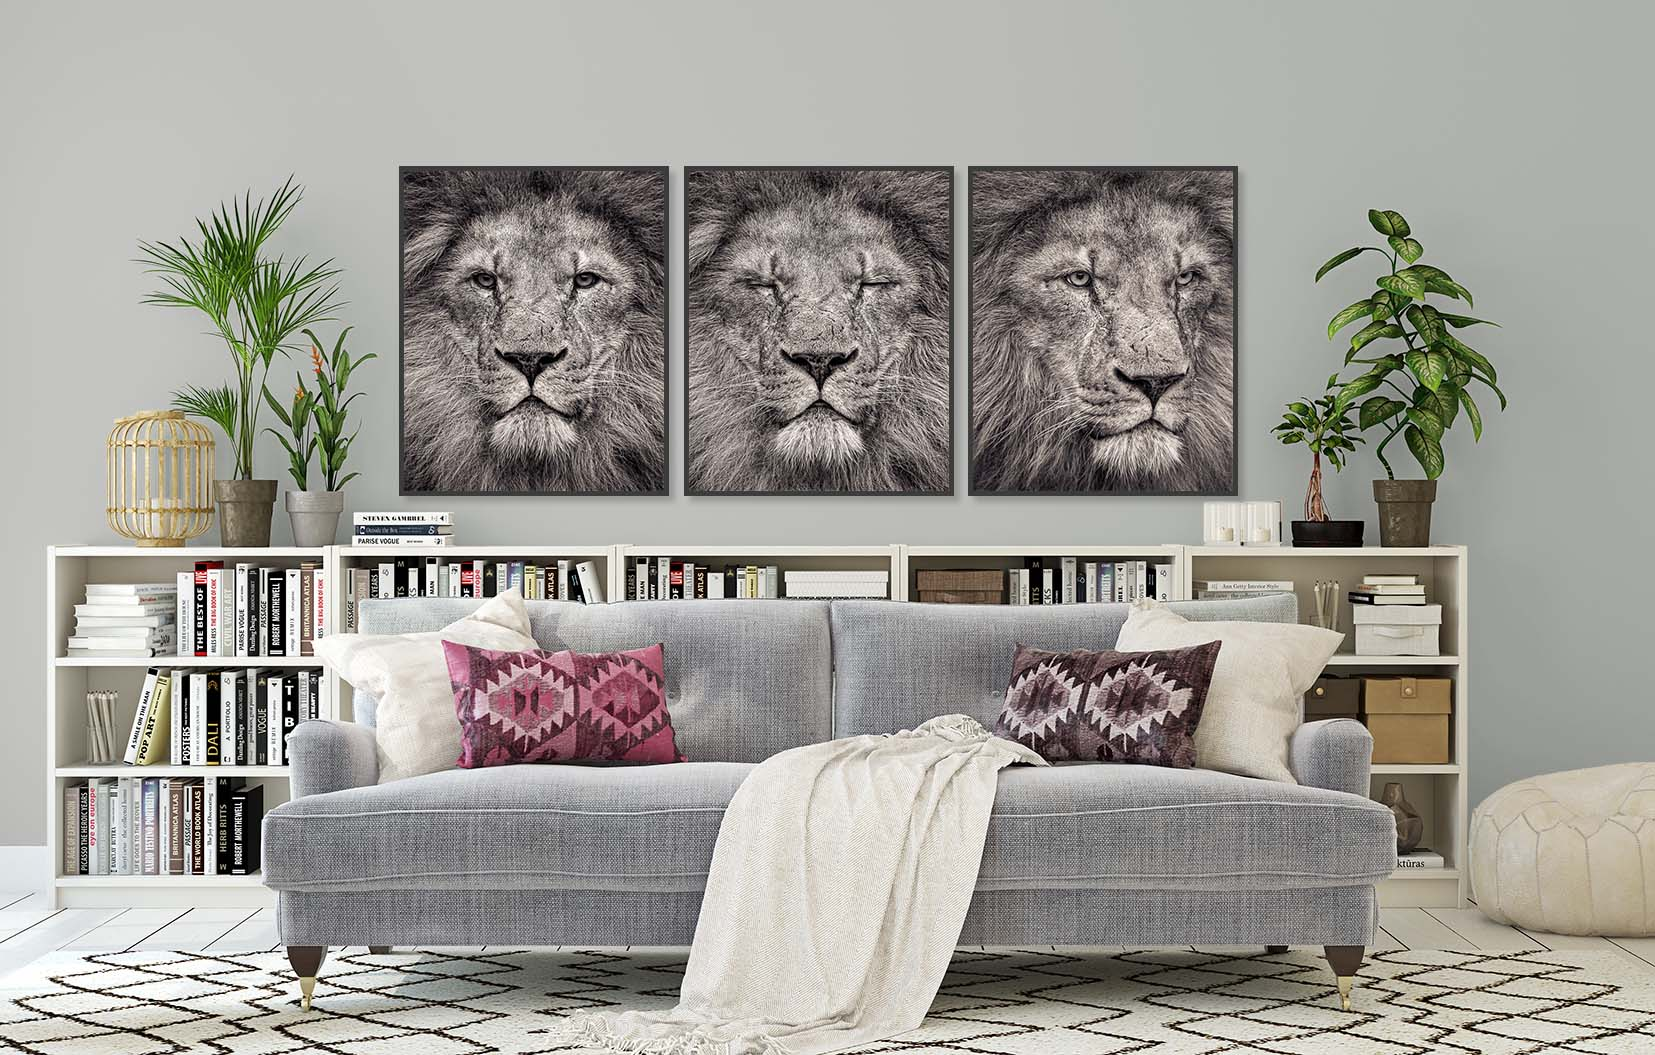 Three black and white portraits of a lion. Limited edition fine art prints by award-winning photographer Paul Coghlin.